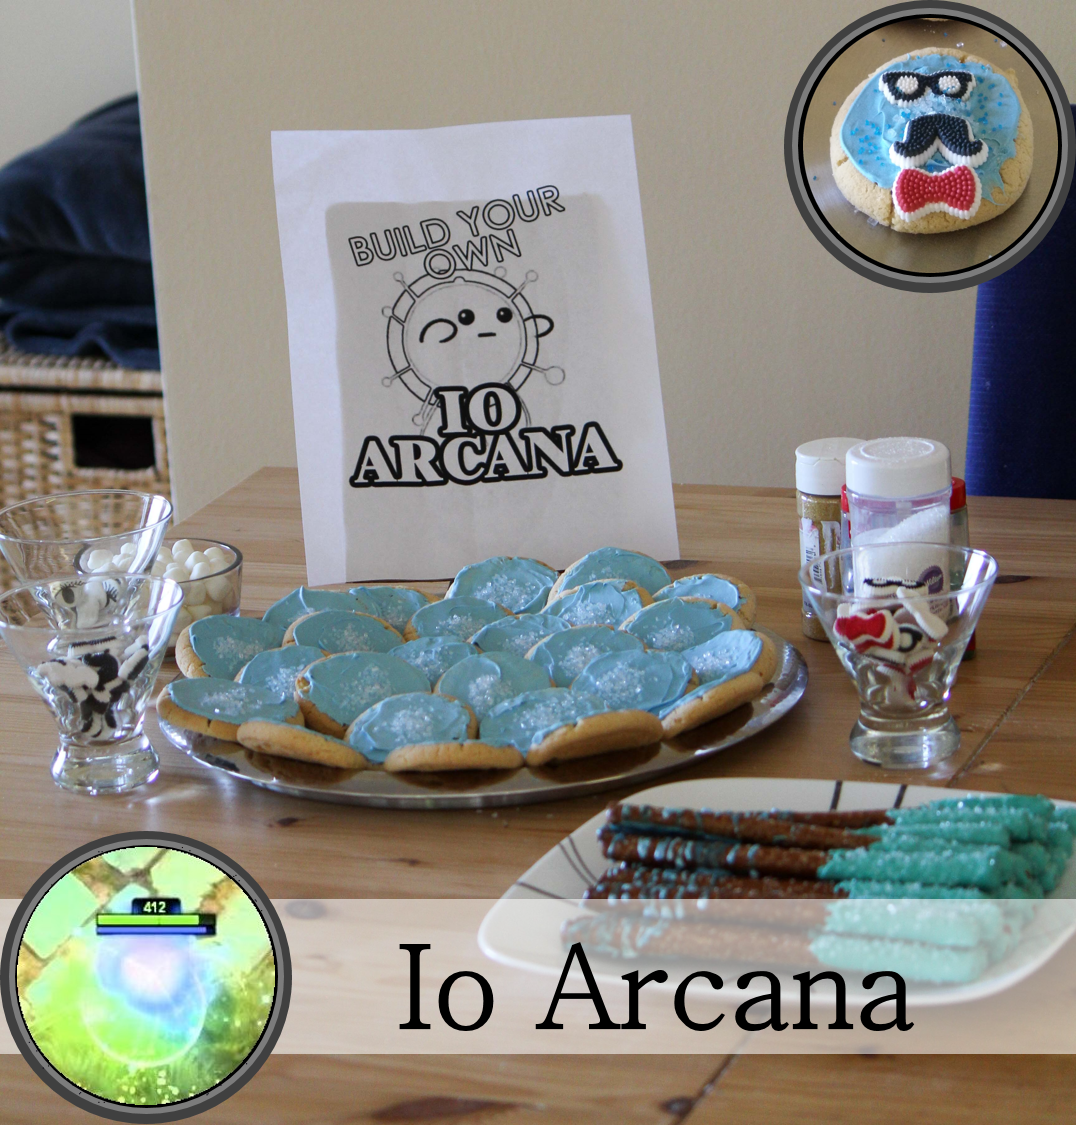 Cookie decorating station for creating your own Io arcana